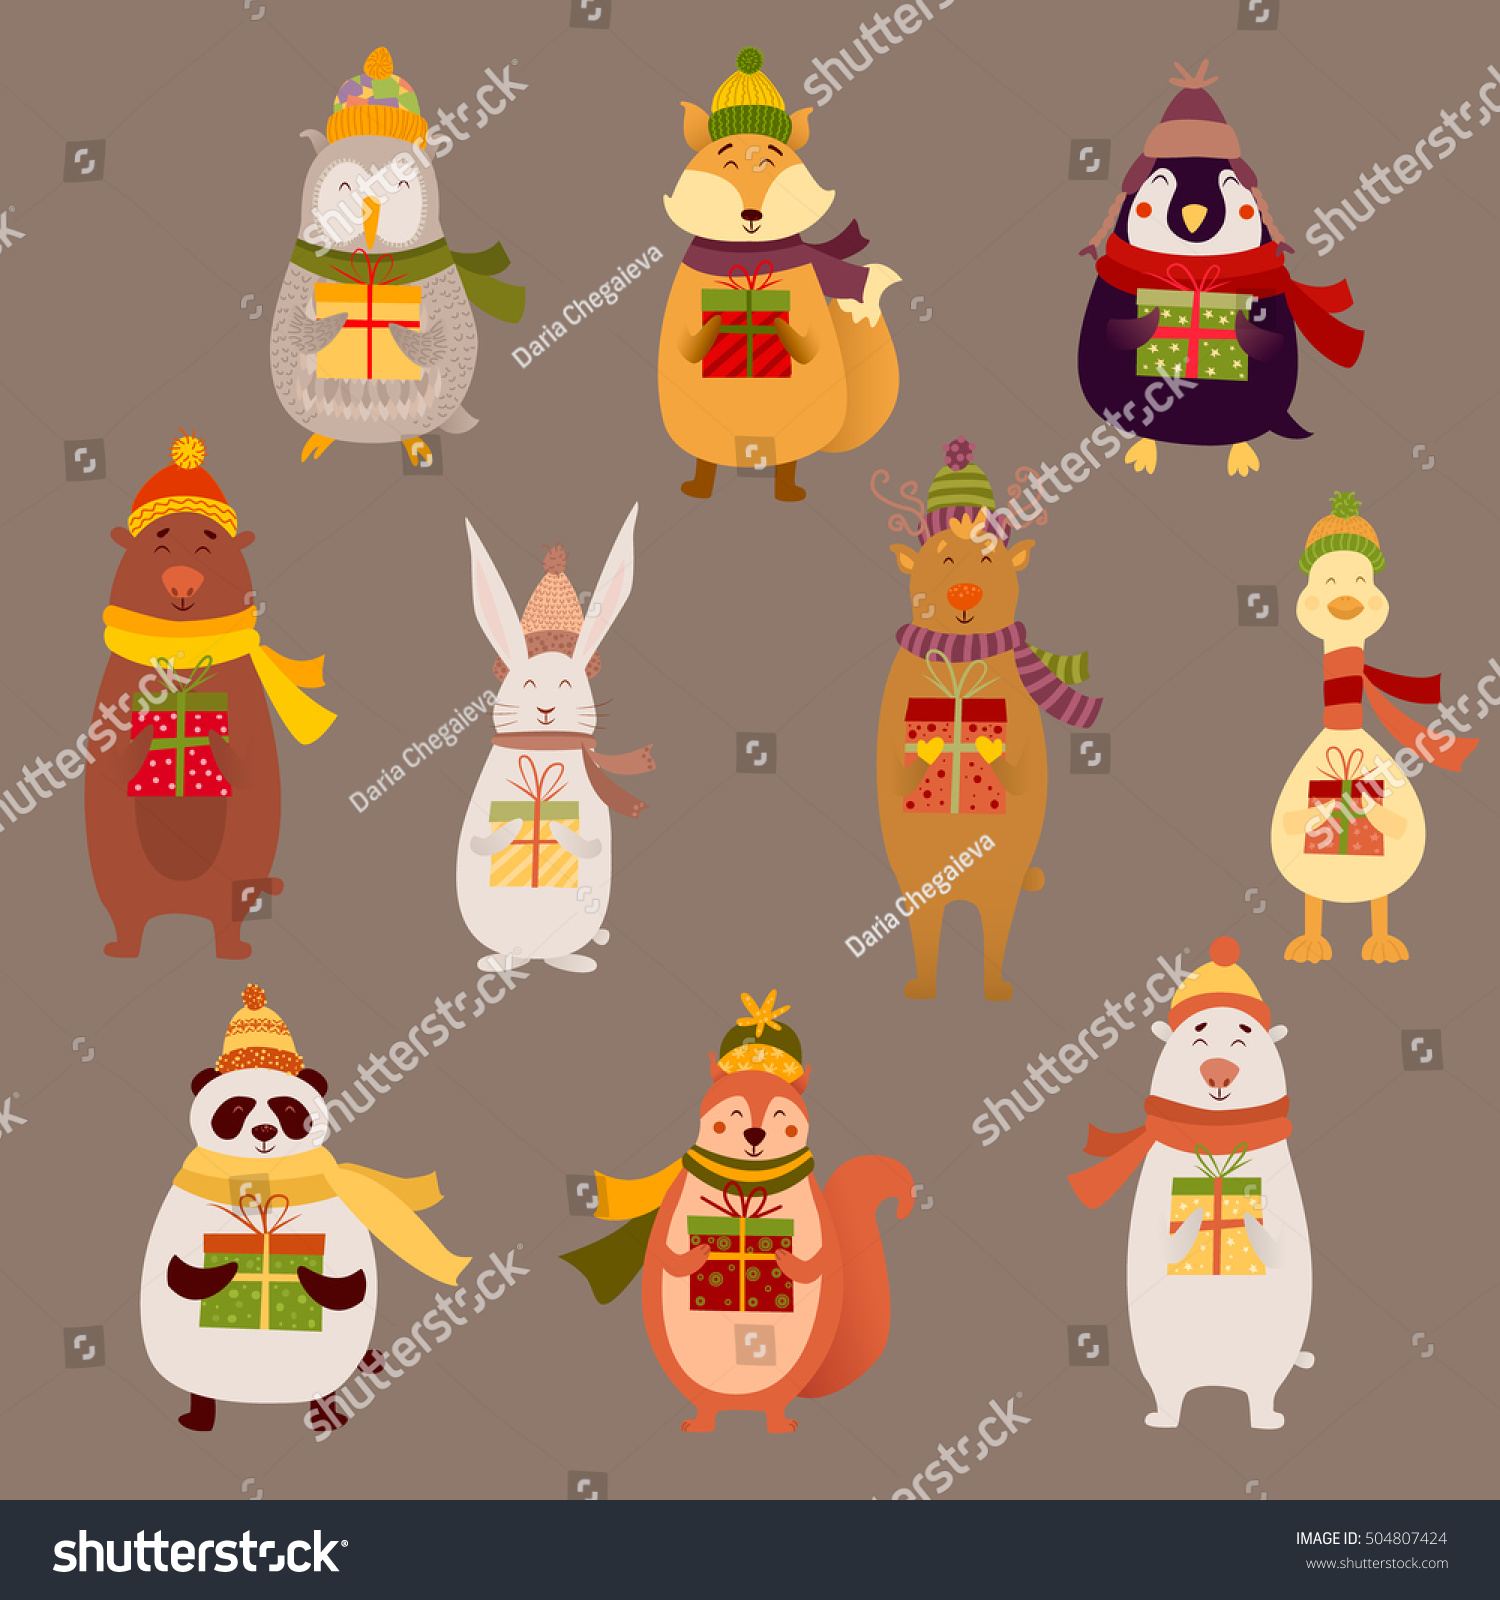 6ce59bc7bc395 Cute Smiling Cartoon Reindeer Owl Penguin Stock Vector (Royalty Free ...